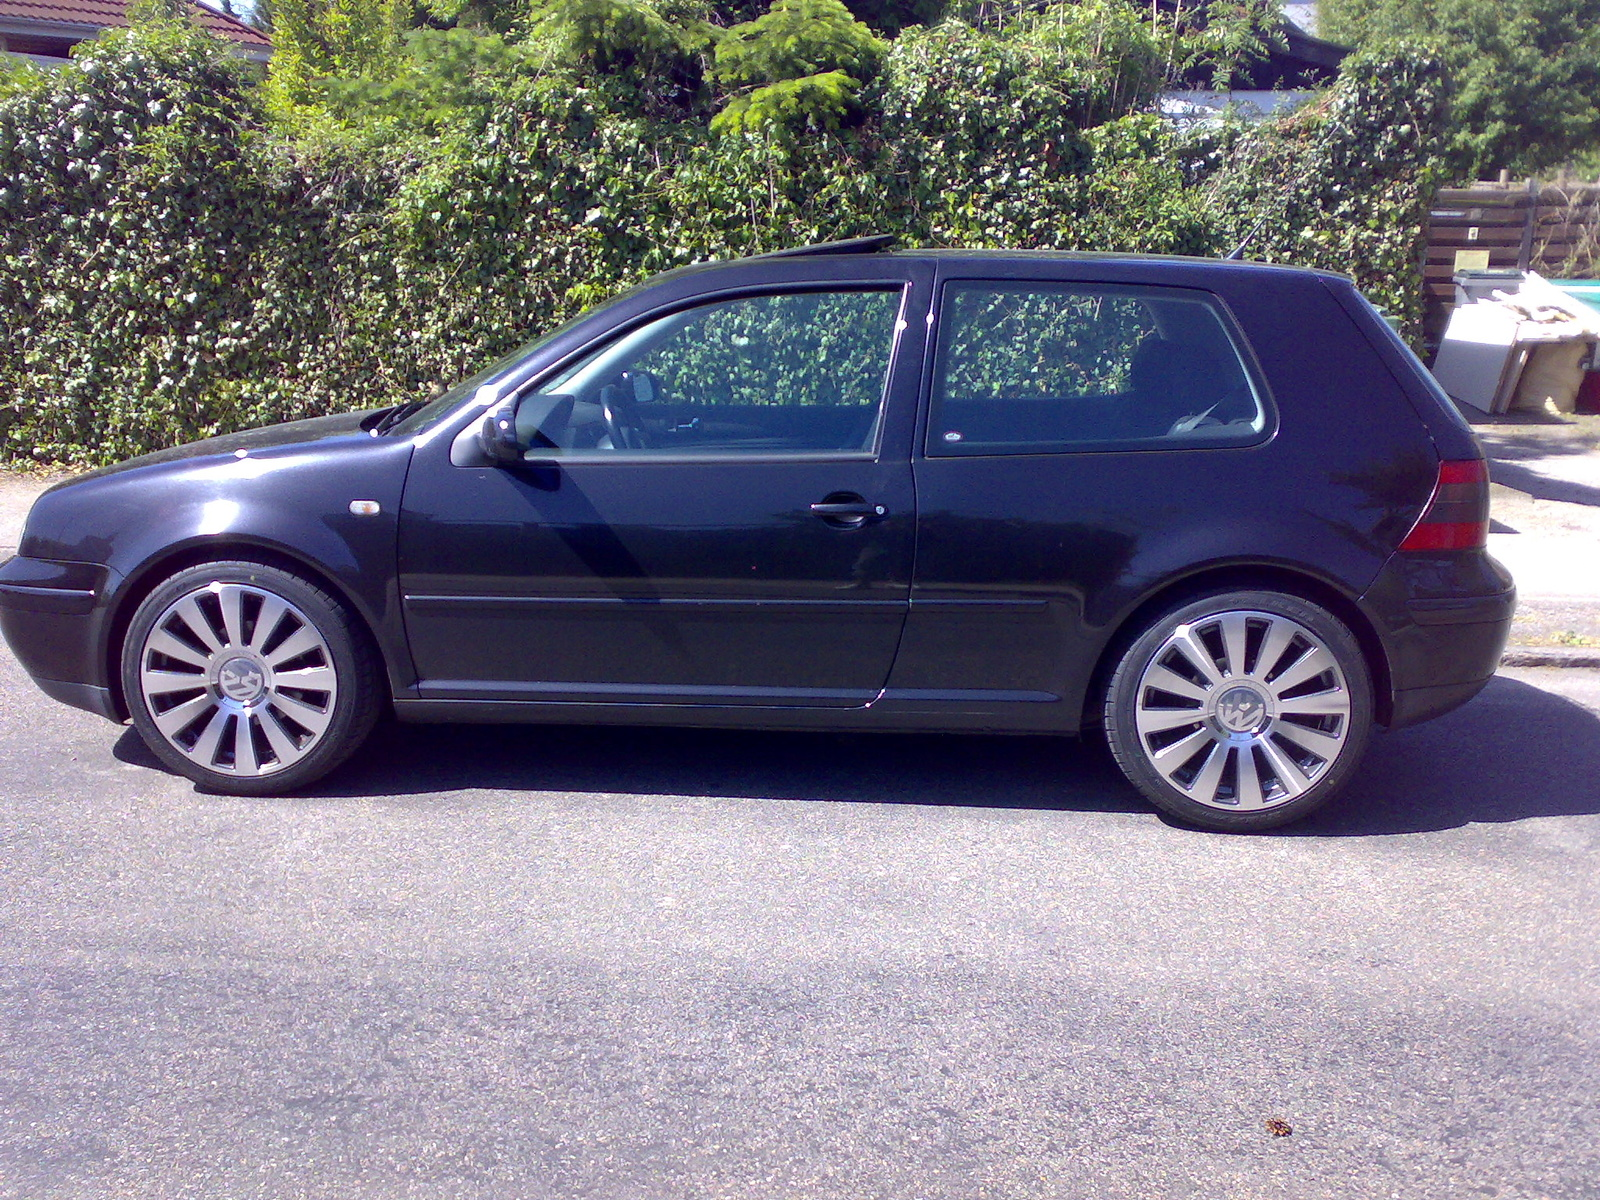 Volkswagen golf 2000 5 volkswagen golf 2000 5